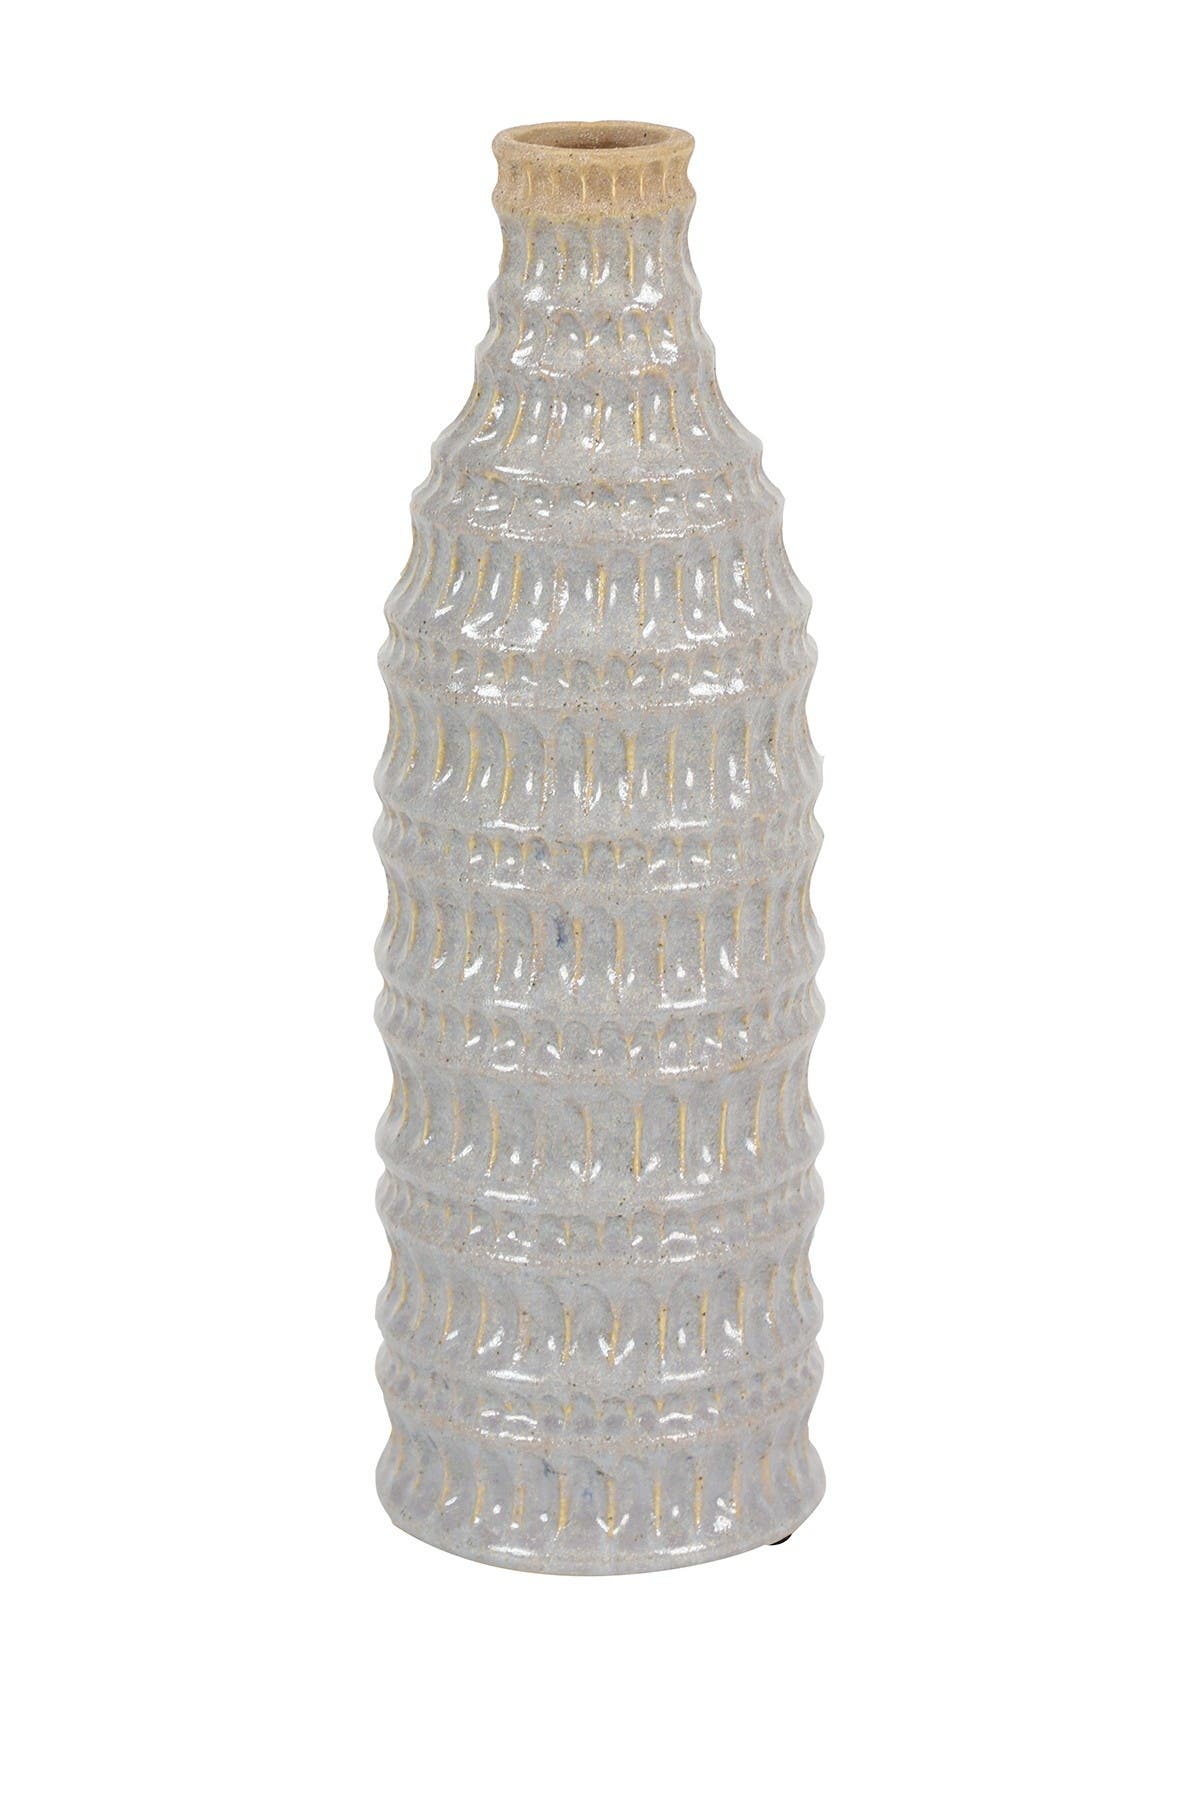 """Image of Willow Row Tall, Cylindrical Light Gray Ceramic Decorative Vase with Hand-Carved Geometric Design - 4.5""""x 14"""